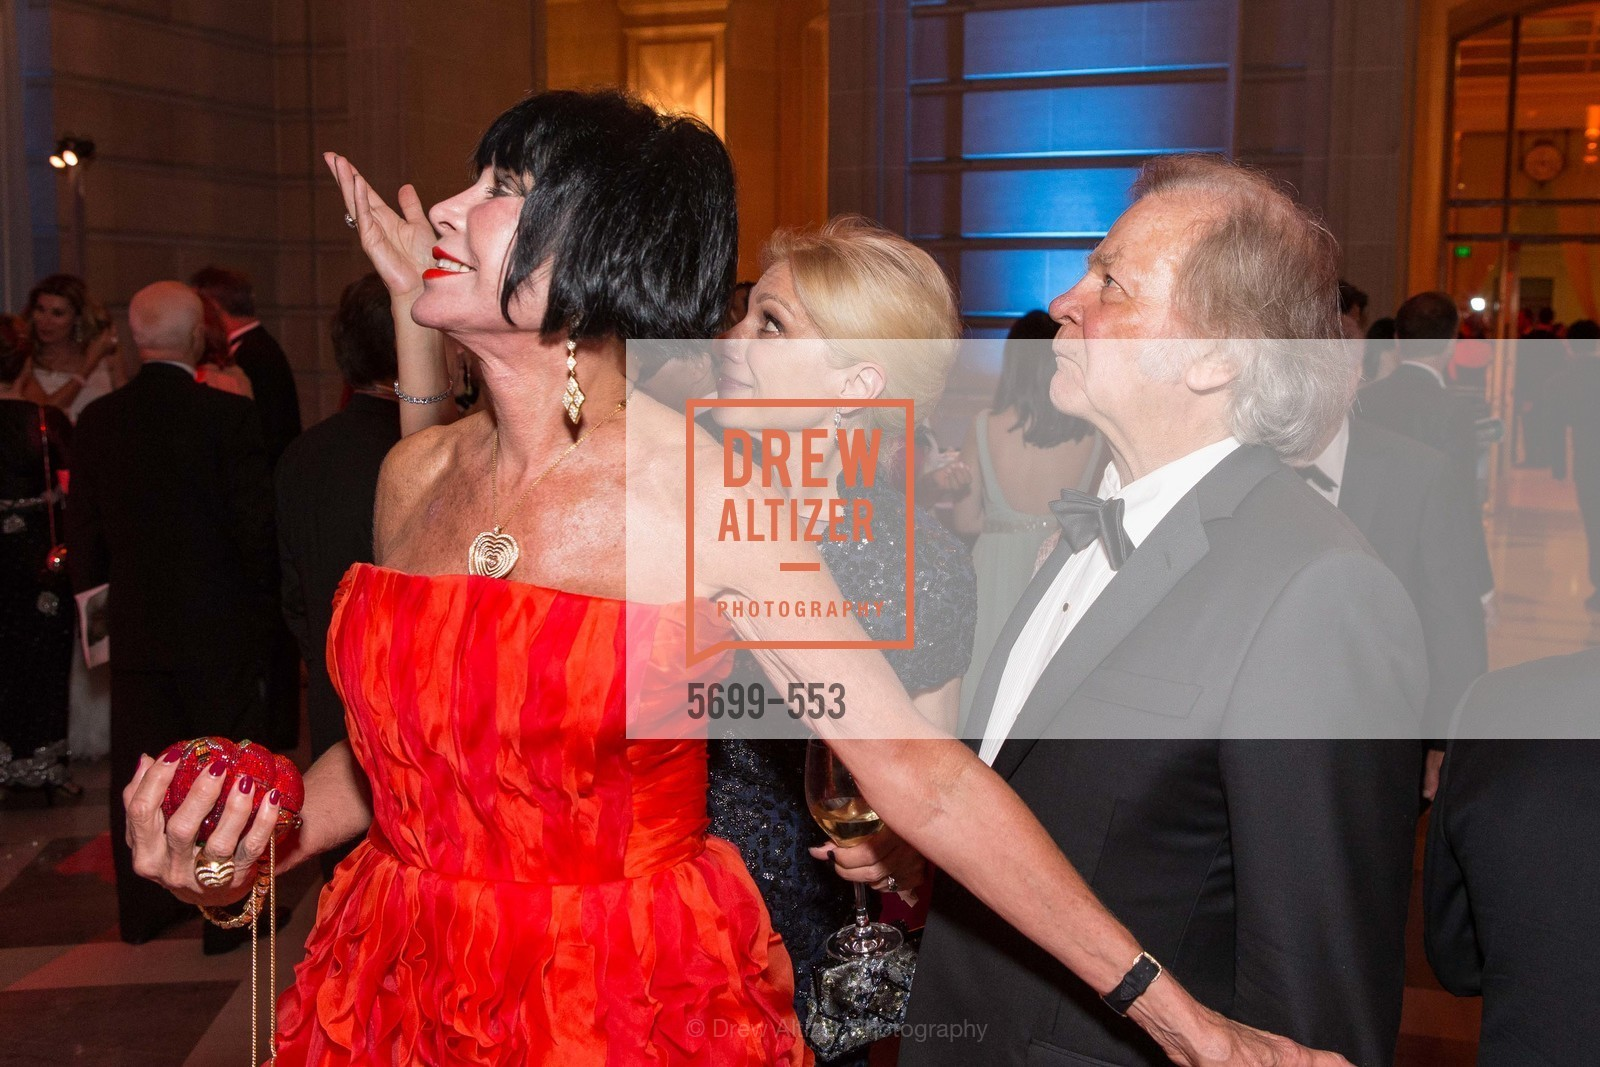 Marilyn Cabak, Cynthia Schreuder, Michael Cabak, SAN FRANCISCO OPERA'S 92nd Opera Ball 2014: PASSIONE, Opera House, September 5th, 2014,Drew Altizer, Drew Altizer Photography, full-service agency, private events, San Francisco photographer, photographer california